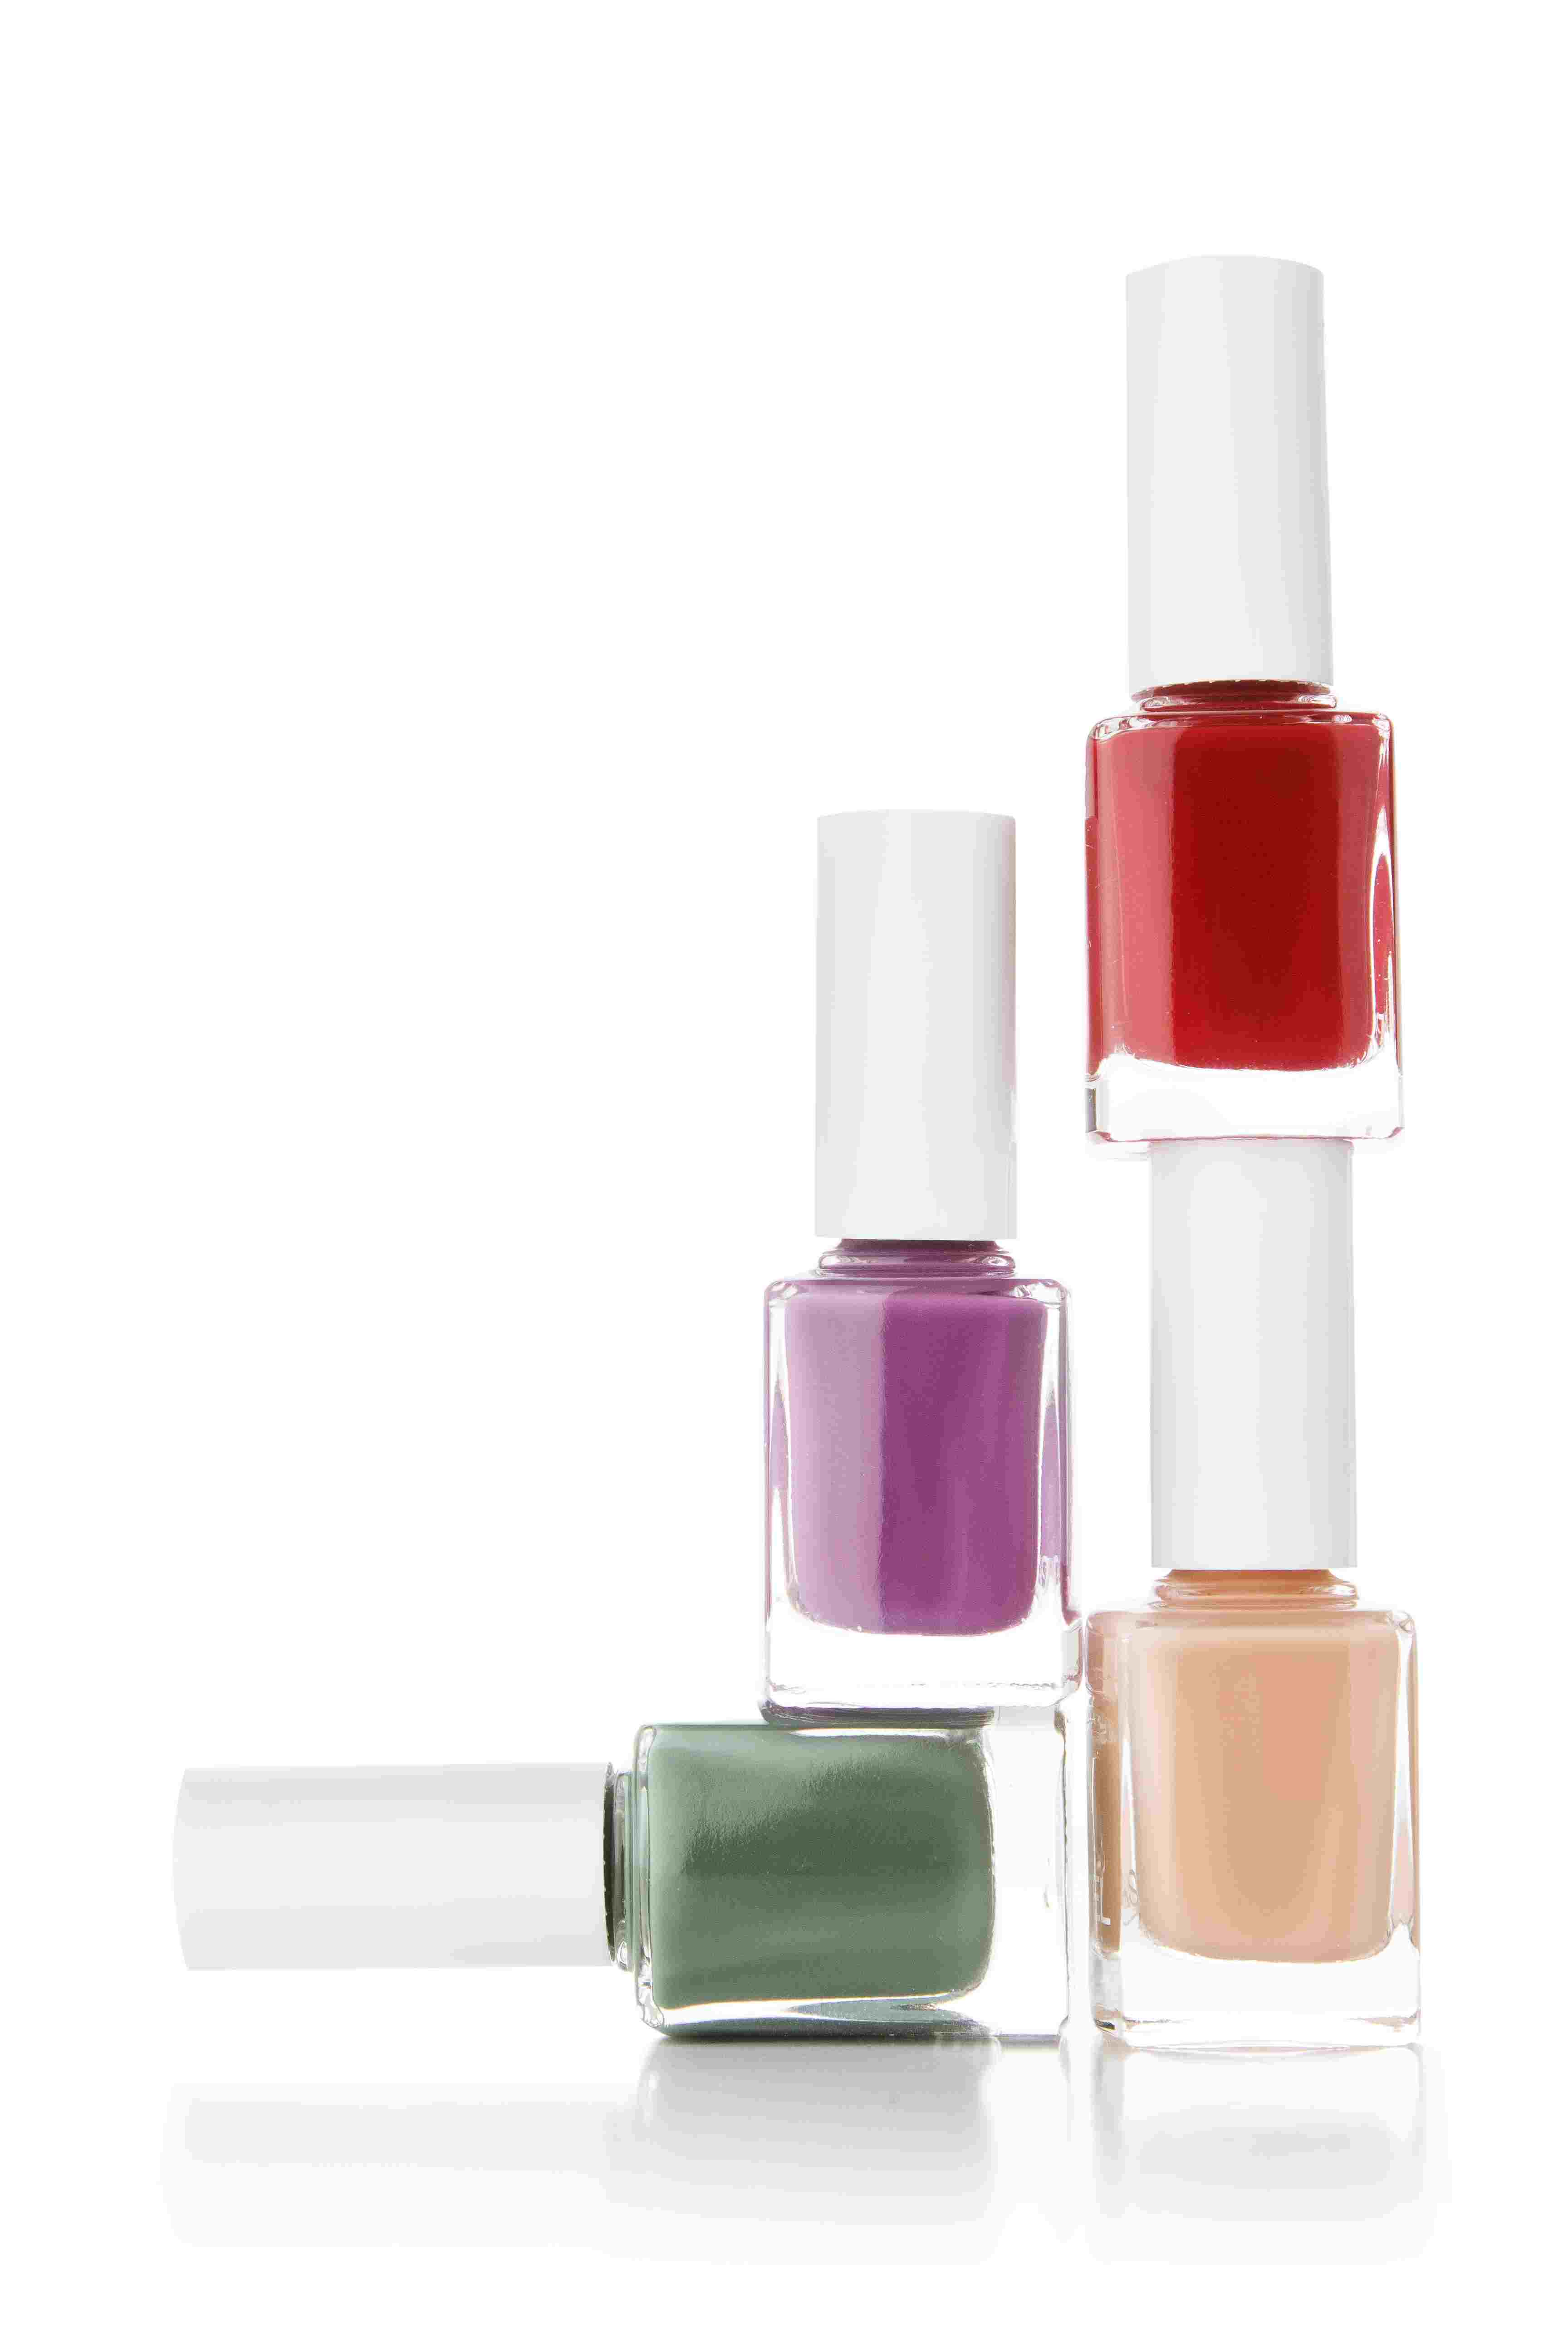 From 3200 B.C. to 2016: The Fascinating History of Nail Polish